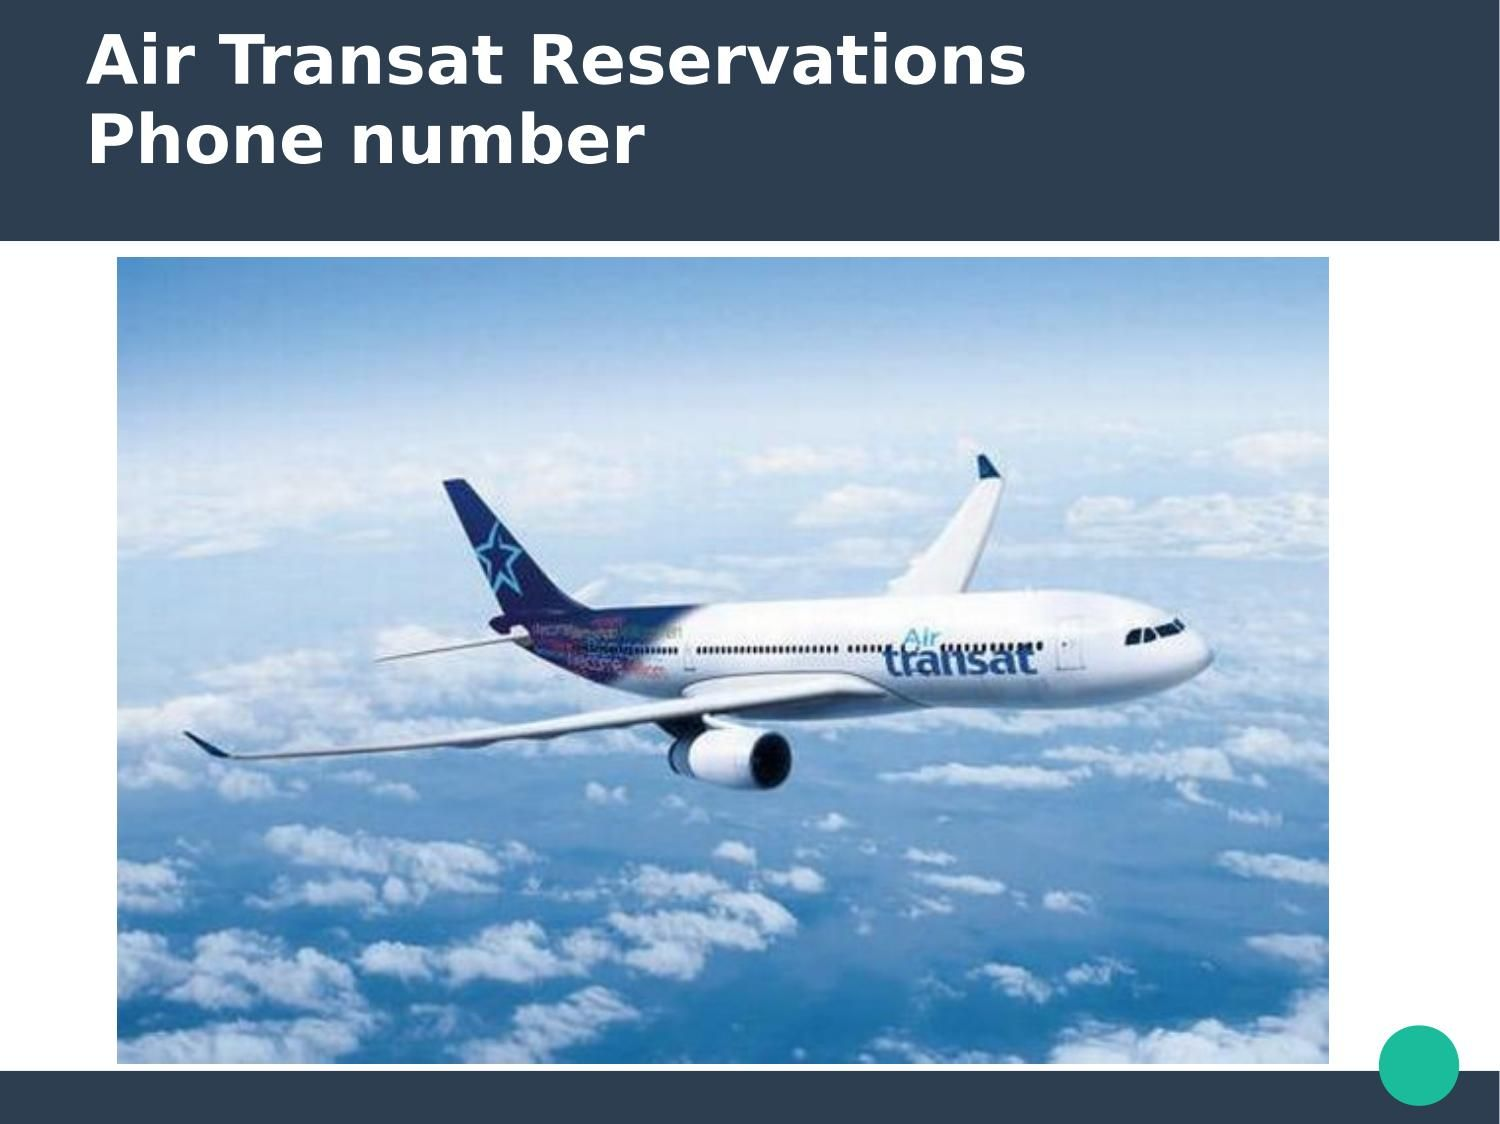 Air transat airlines Reservations phone number Air